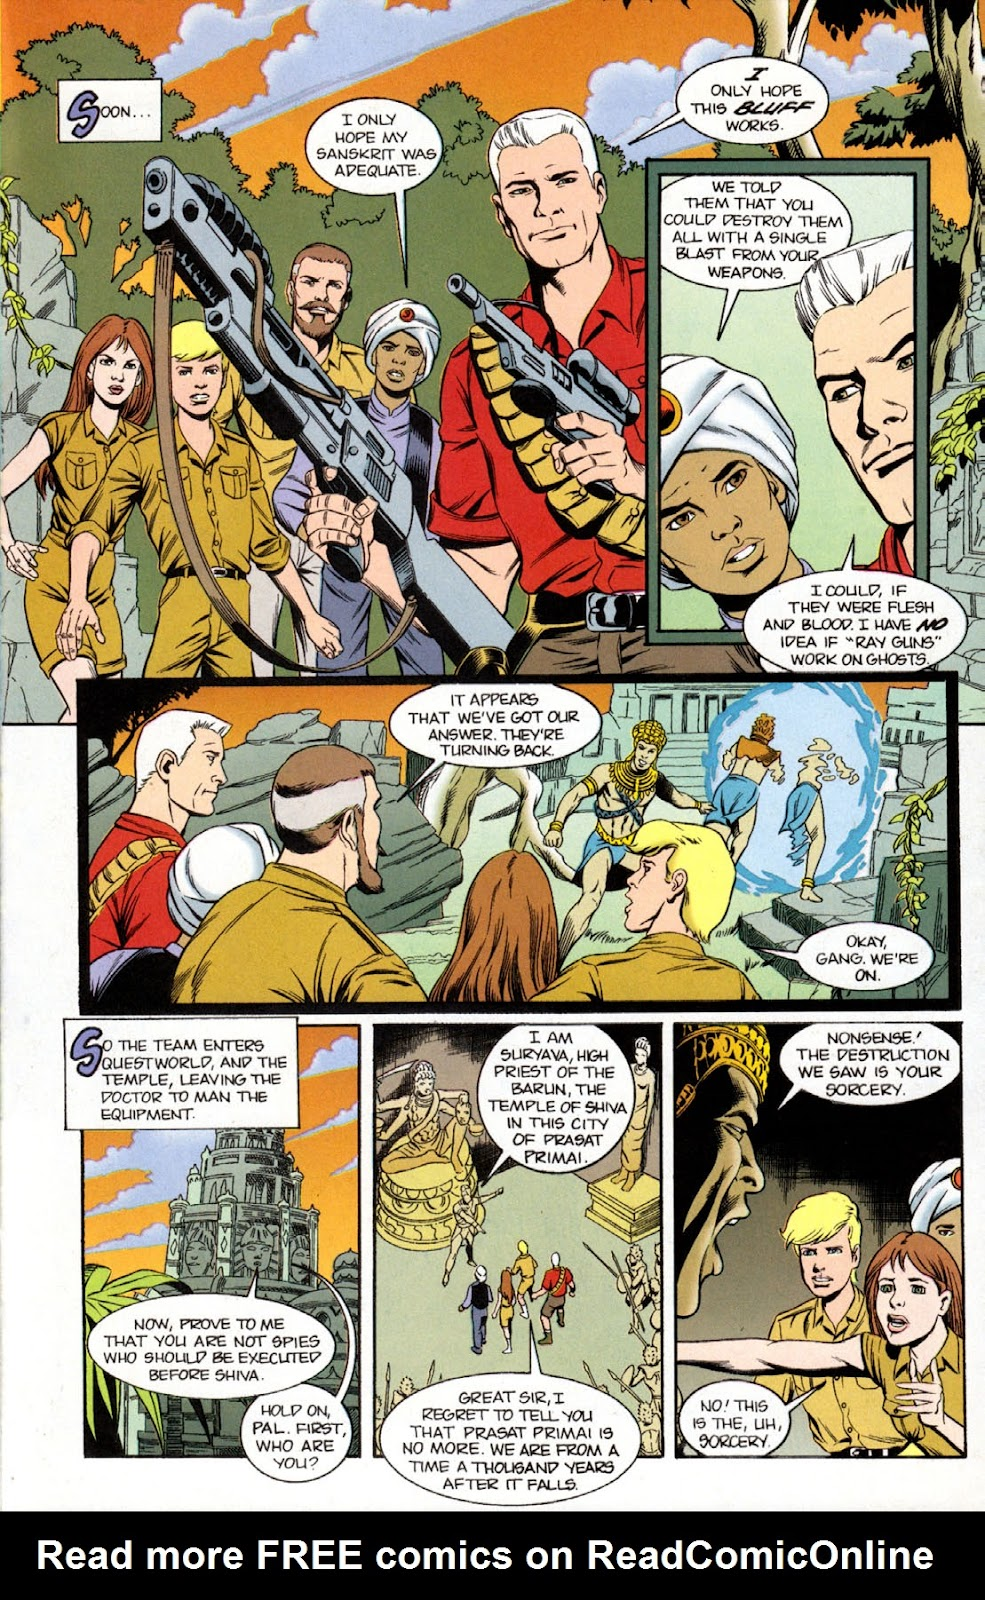 Read online The Real Adventures of Jonny Quest comic -  Issue #11 - 23